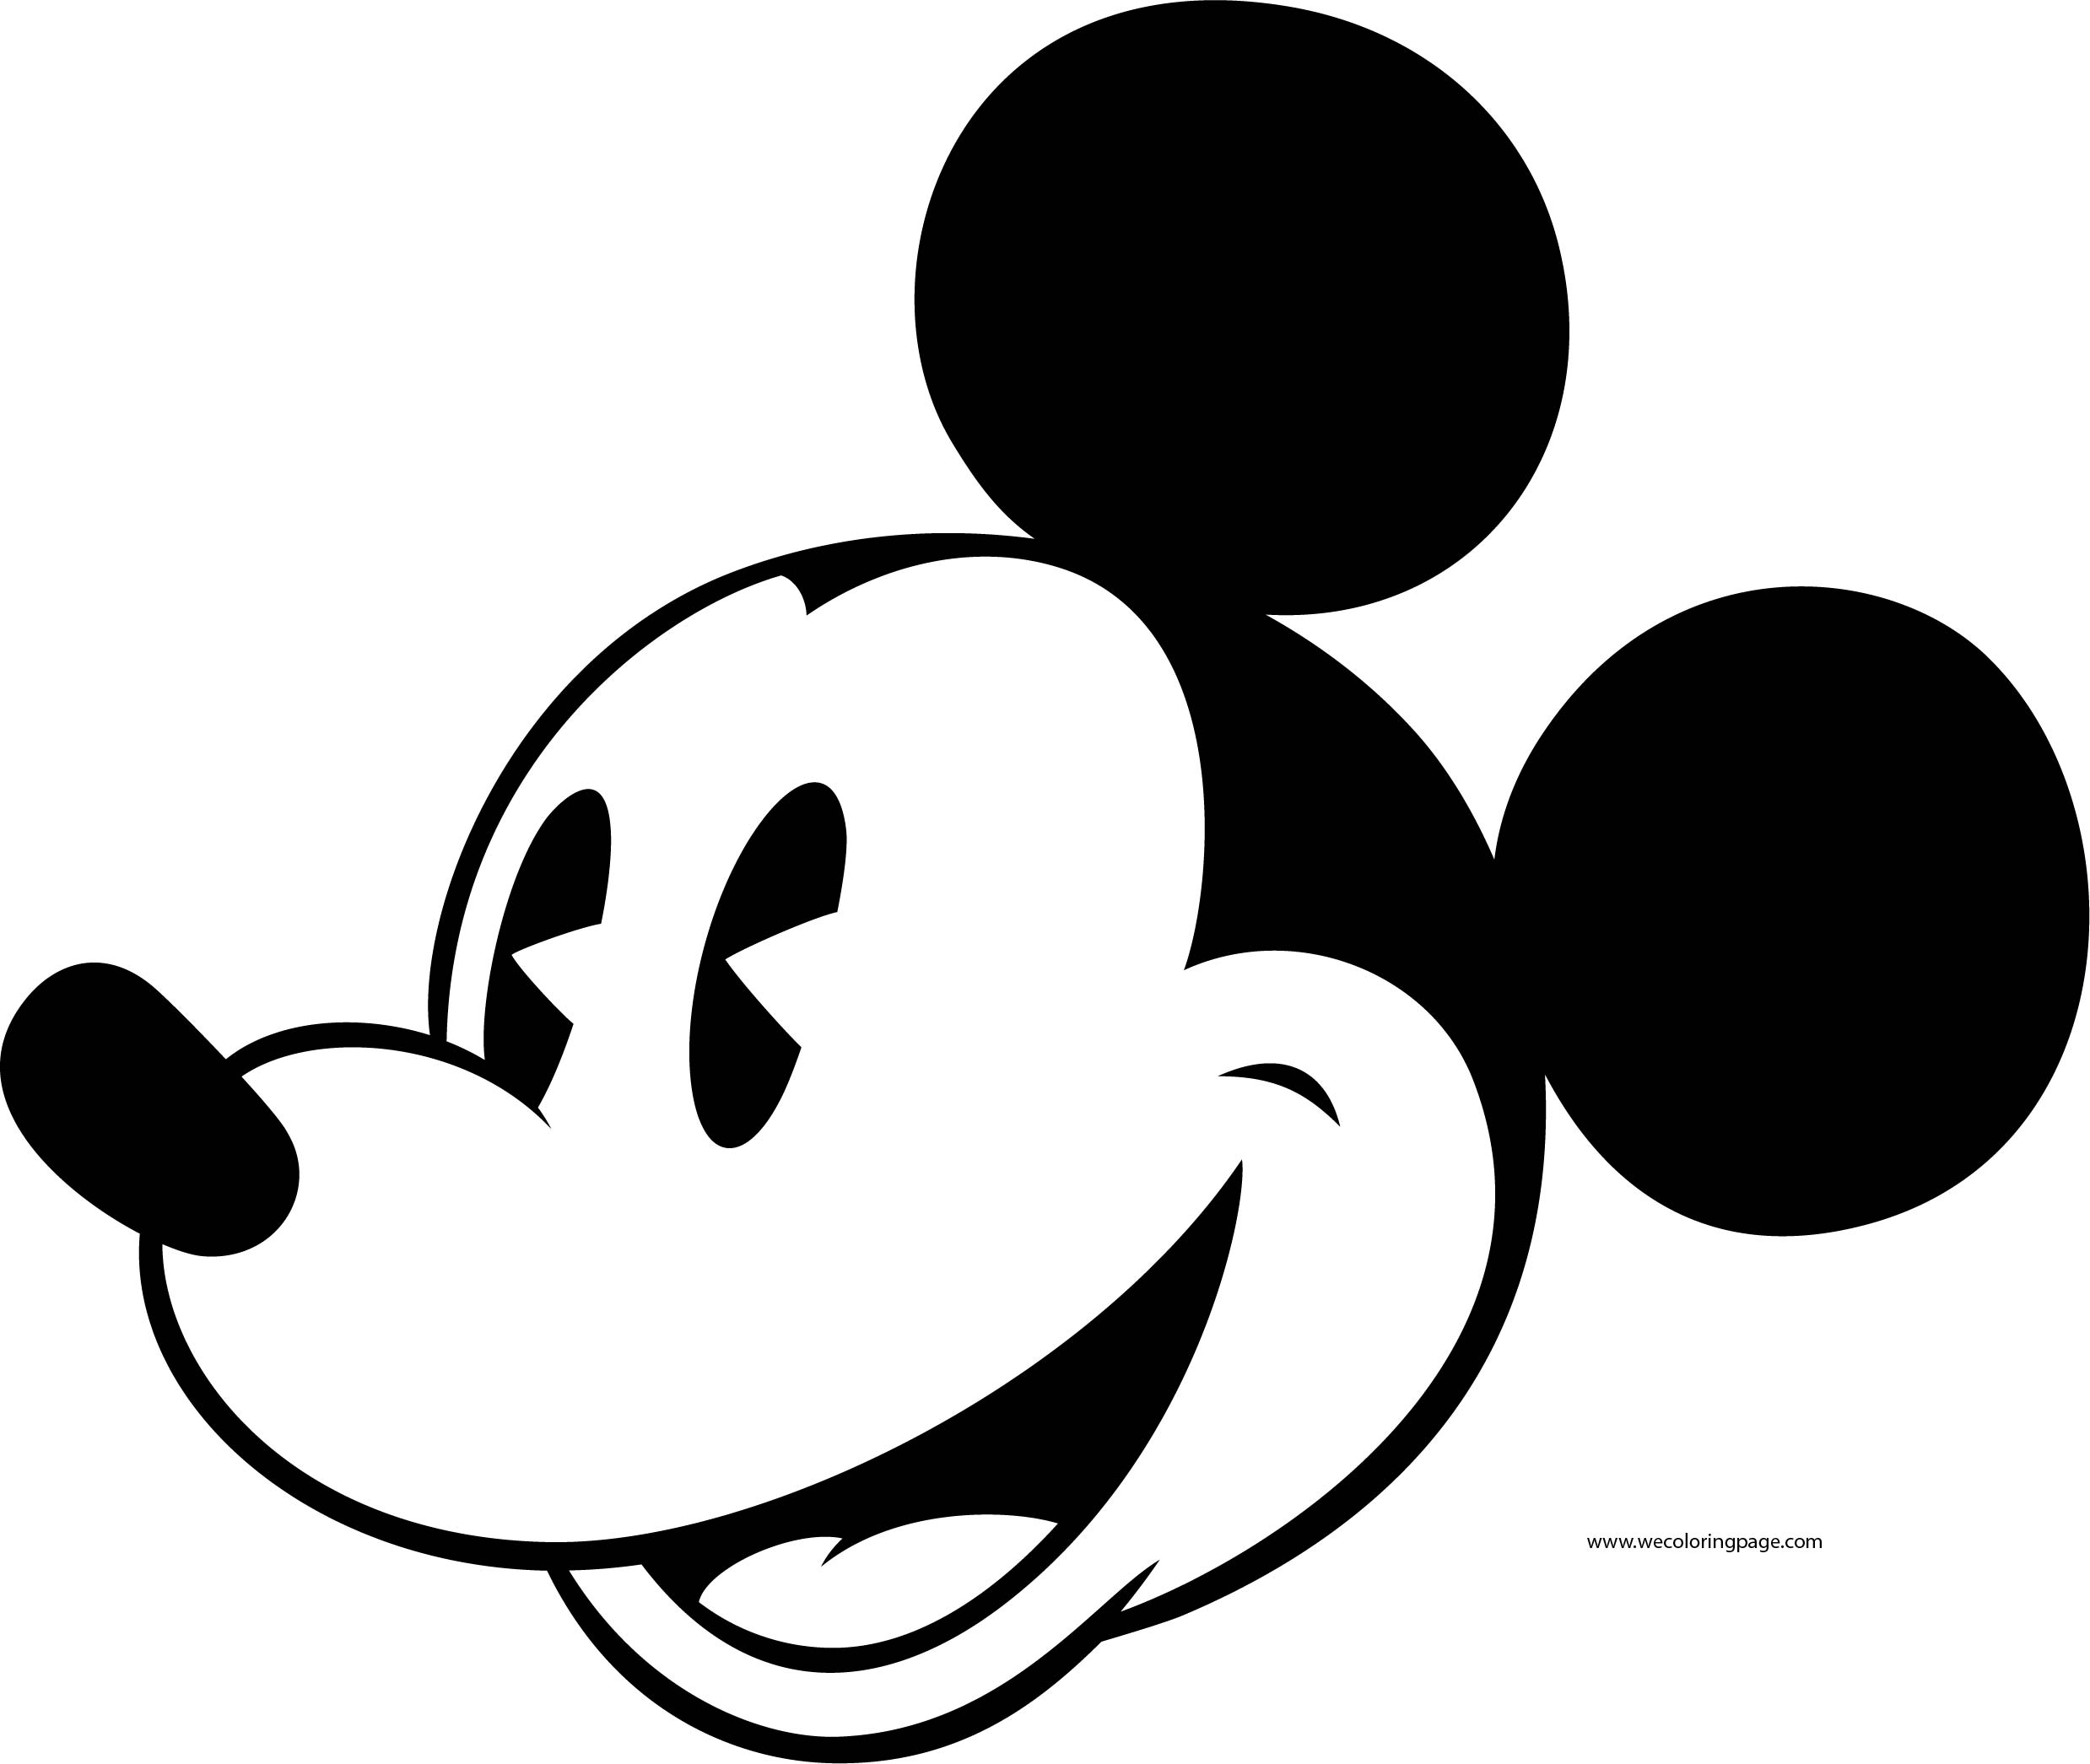 Old Mickey Mouse Face Coloring Page 7 | Wecoloringpage.com